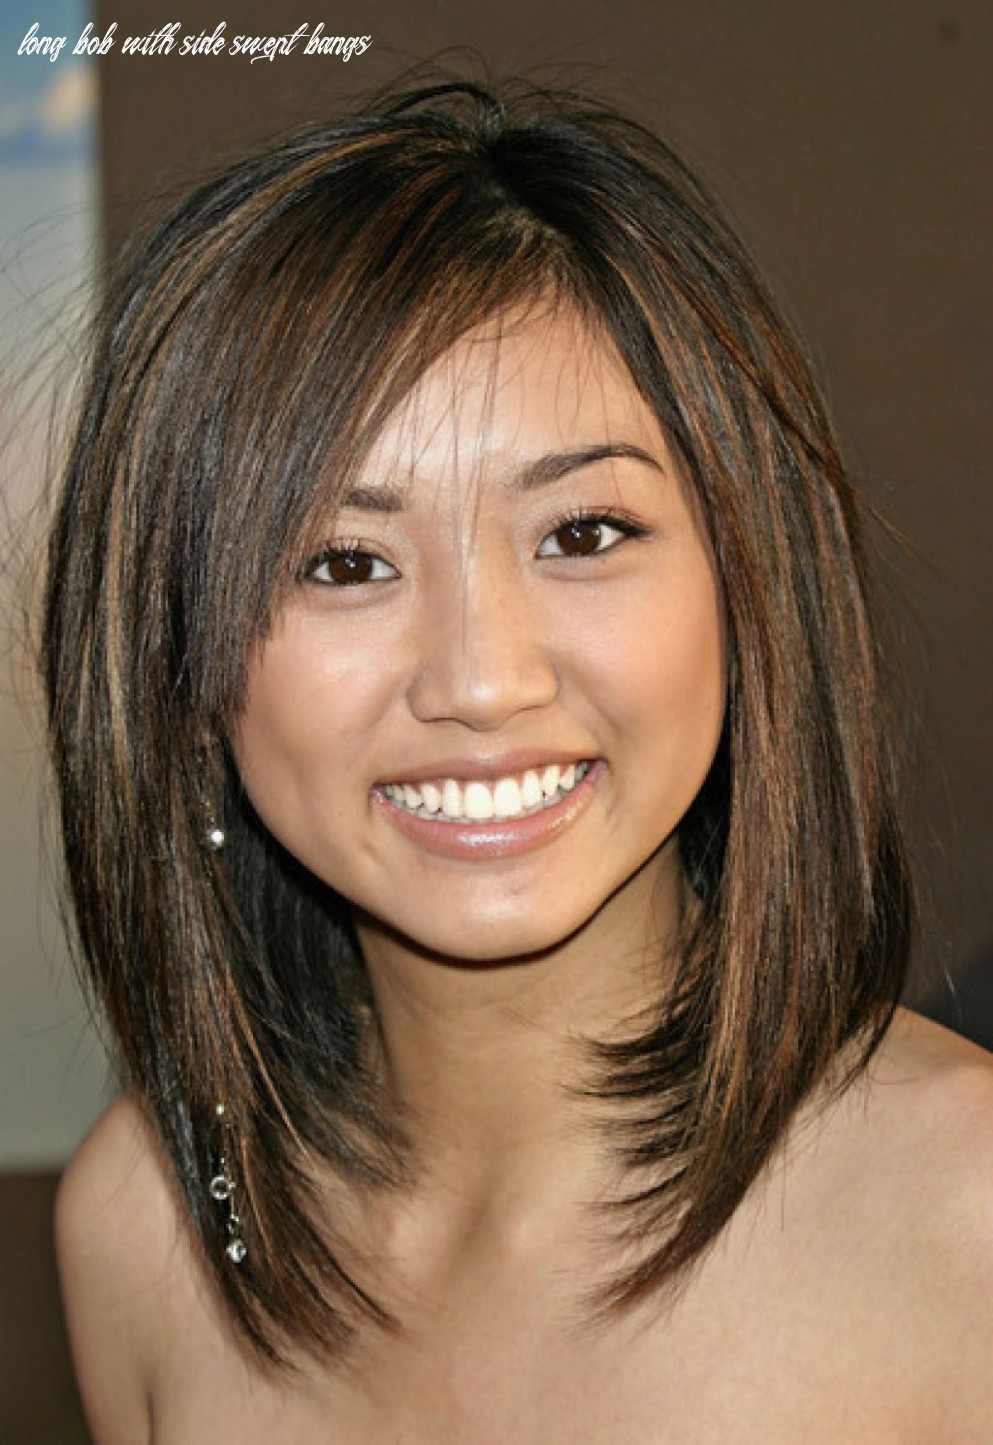 Pin on hair long bob with side swept bangs